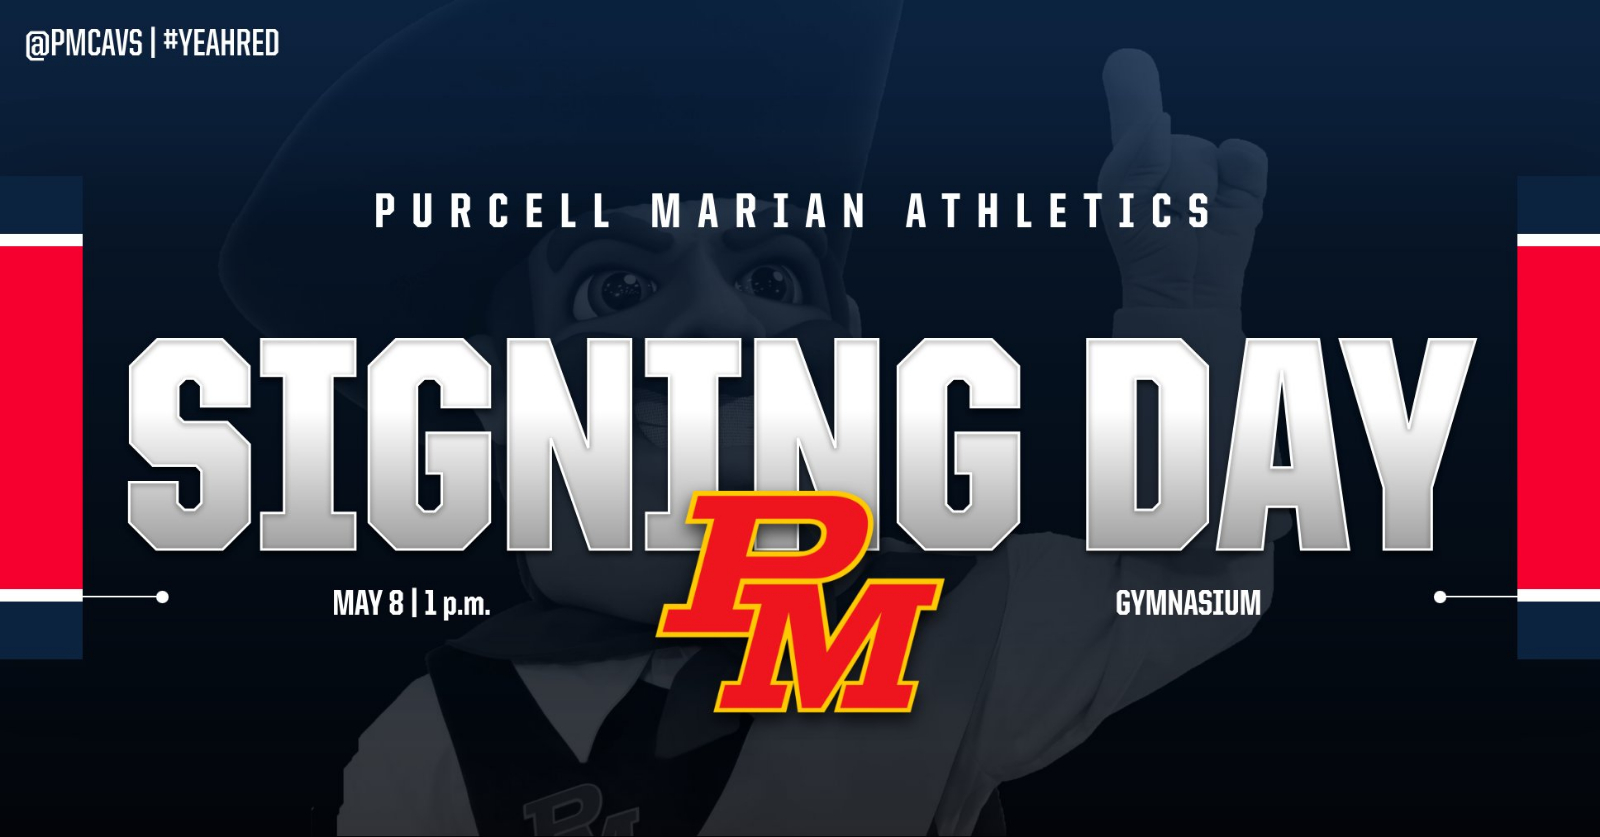 Signing day set for Wednesday, May 8